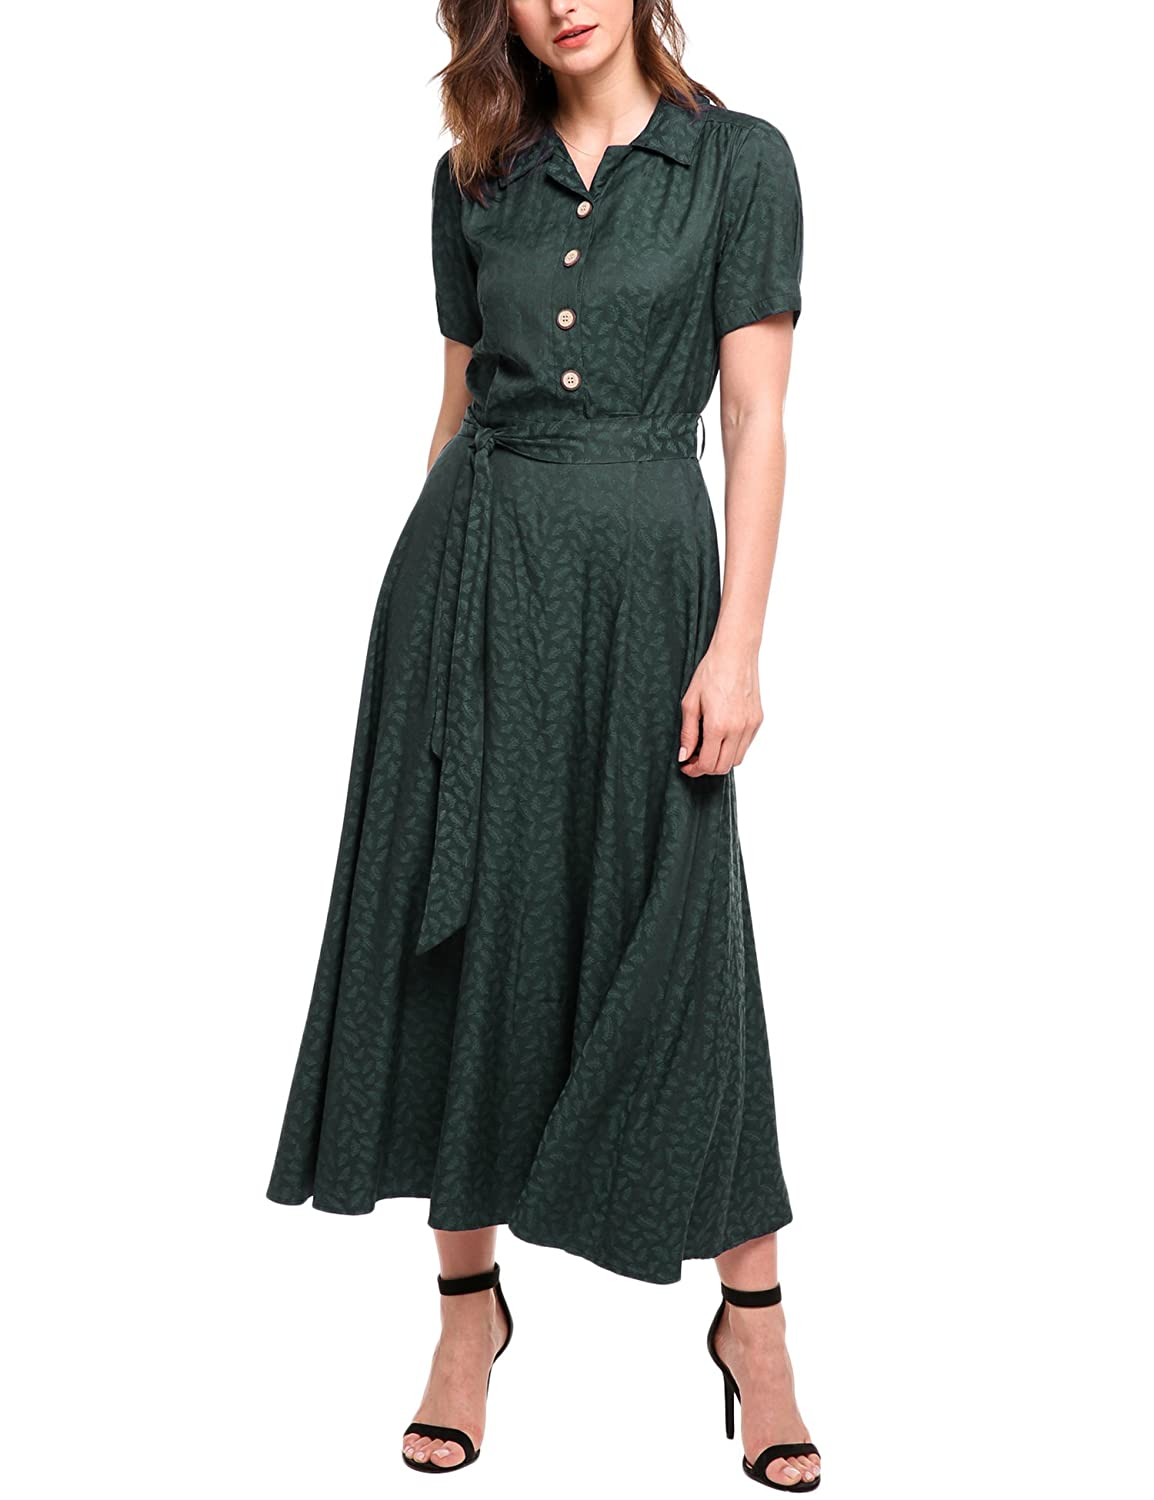 Vintage Tea Dresses, Floral Tea Dresses, Tea Length Dresses ACEVOG Women Vintage Style Turn Down Collar Short Sleeve High Waist Maxi Swing Dress with Belt $38.99 AT vintagedancer.com